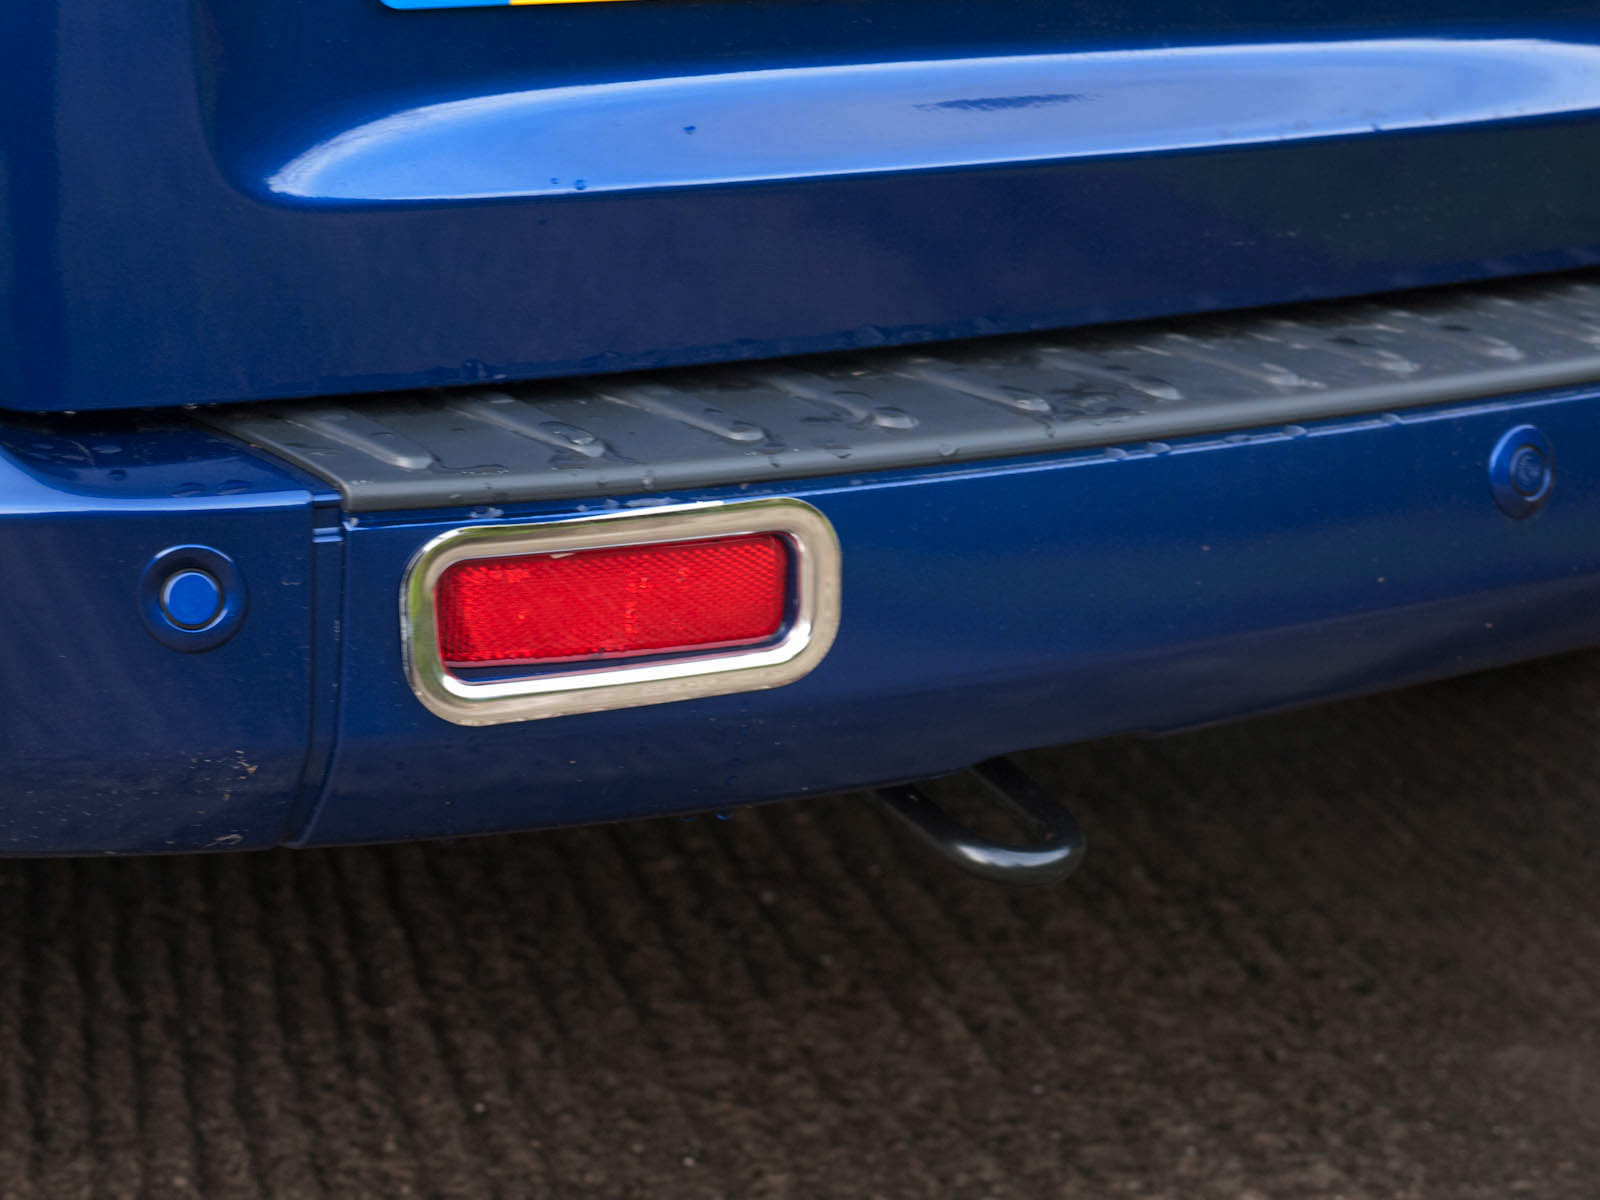 Chrome Stainless Steel Rear Fog Light Surround Covers for Ford ...